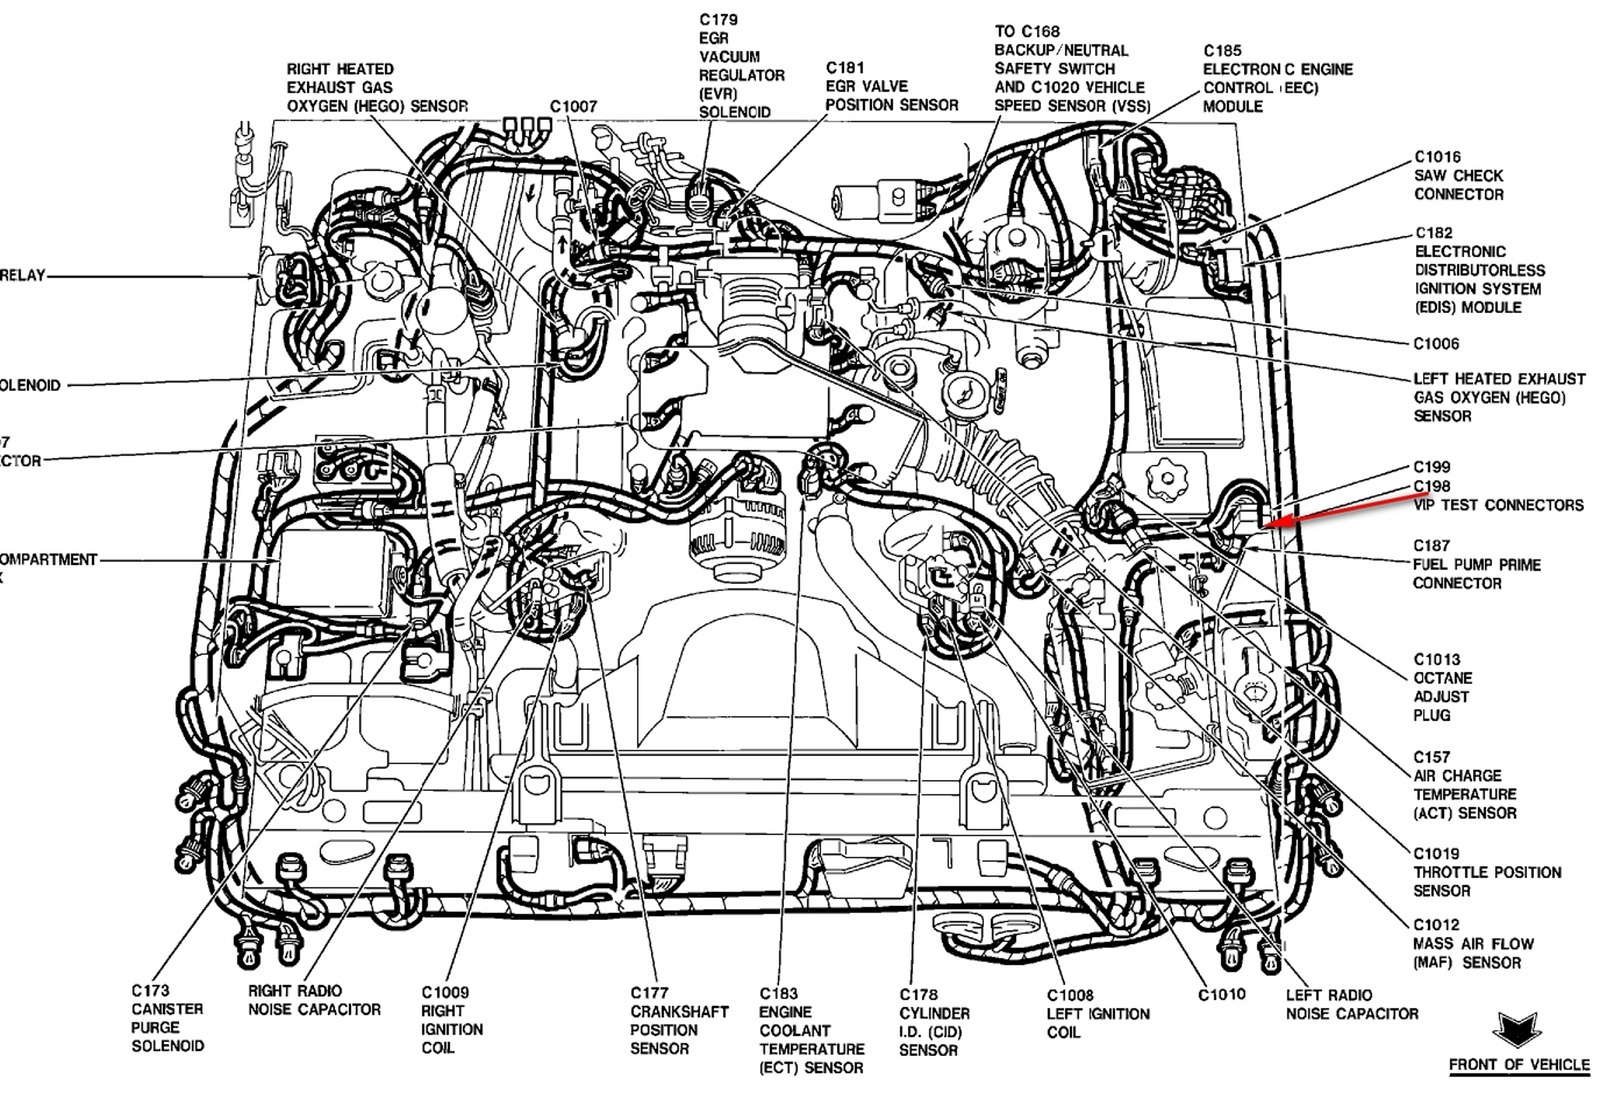 Oldsmobile 98 Serpentine Belt Diagram together with Similiar Chevy Impala 3 4 Engine Diagram Keywords moreover Head Gasket Repair 2005 Chevy Equinox together with Diagnose buick 3800 engine further 24 2000 Buick Lesabre Parts Diagram. on 2000 buick lesabre 3800 engine diagram